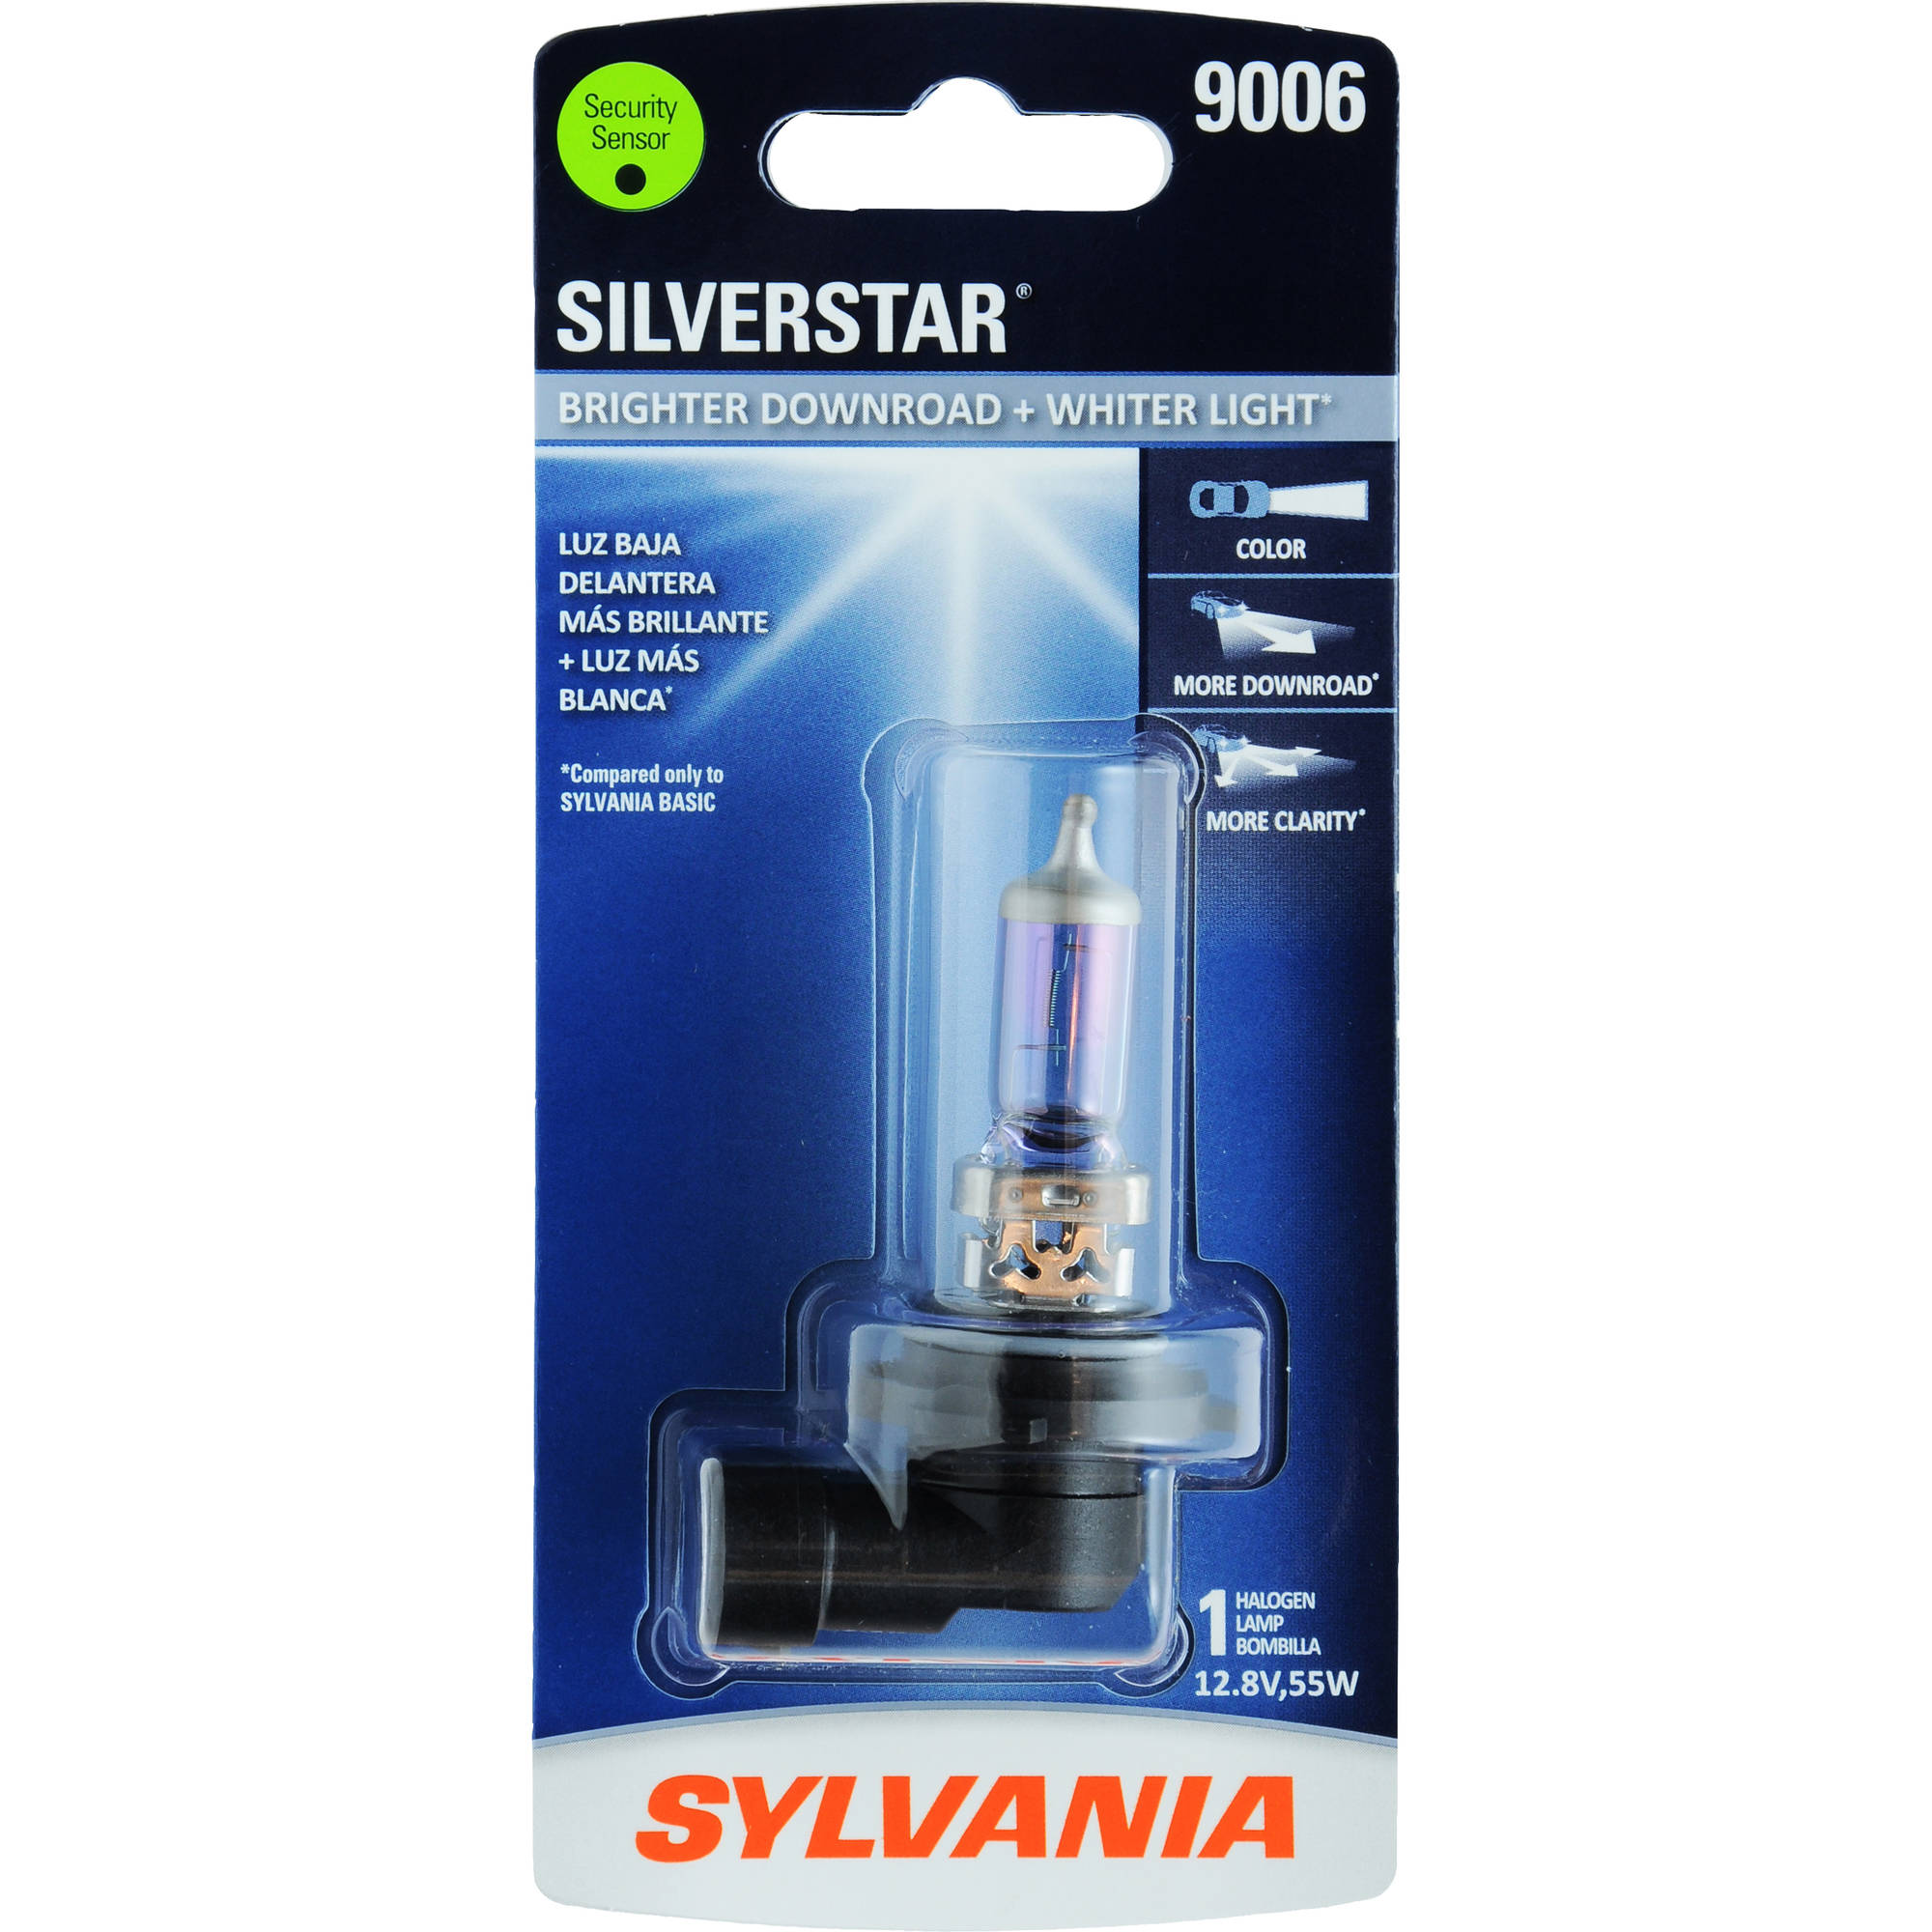 Sylvania 9006 SilverStar Headlight, Contains 1 Bulb